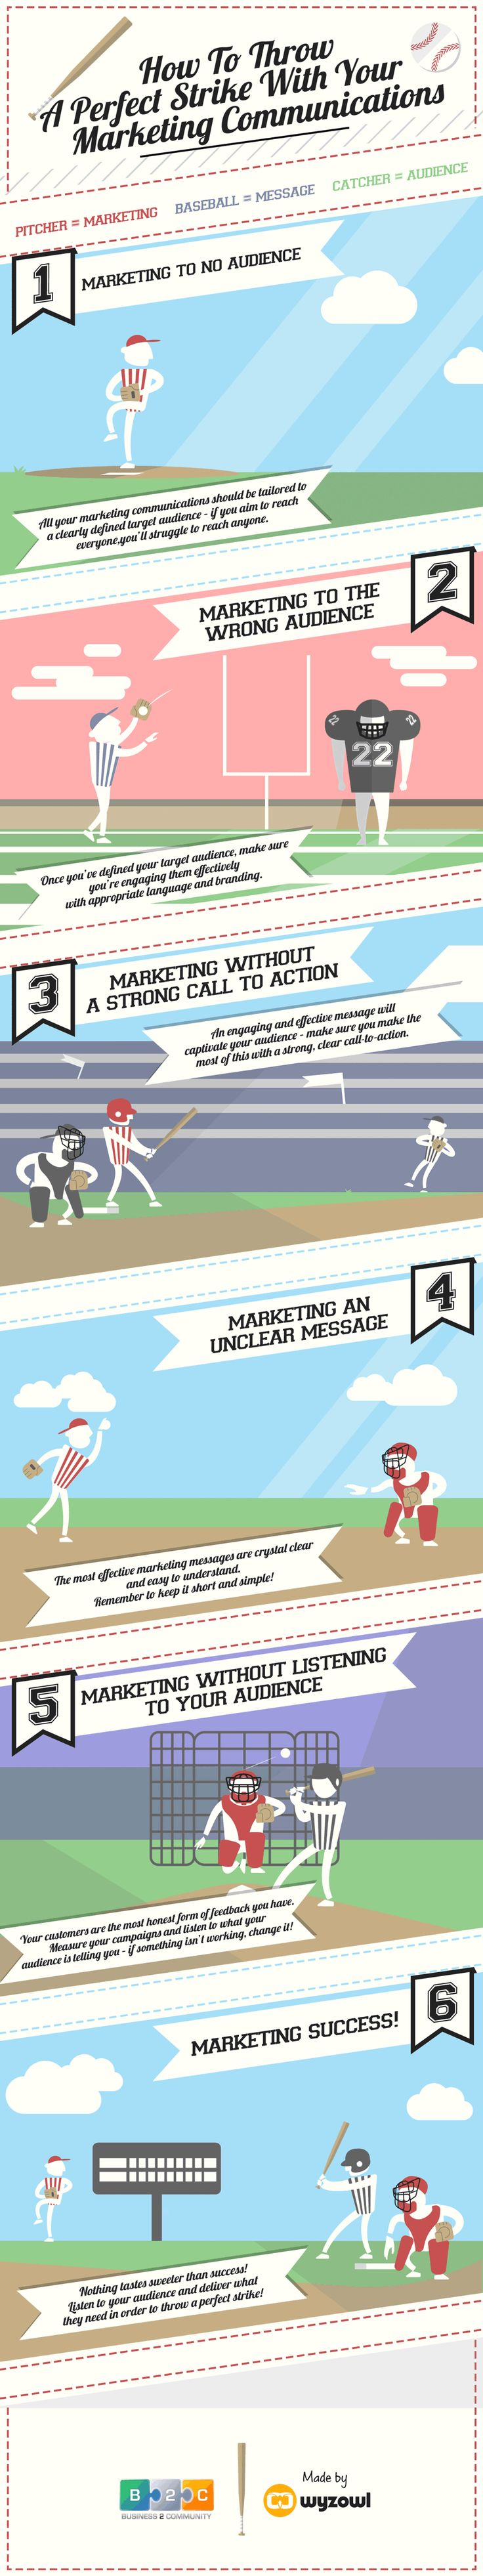 How To Throw A Perfect Strike With Your #Marketing #Communications - #Infographic